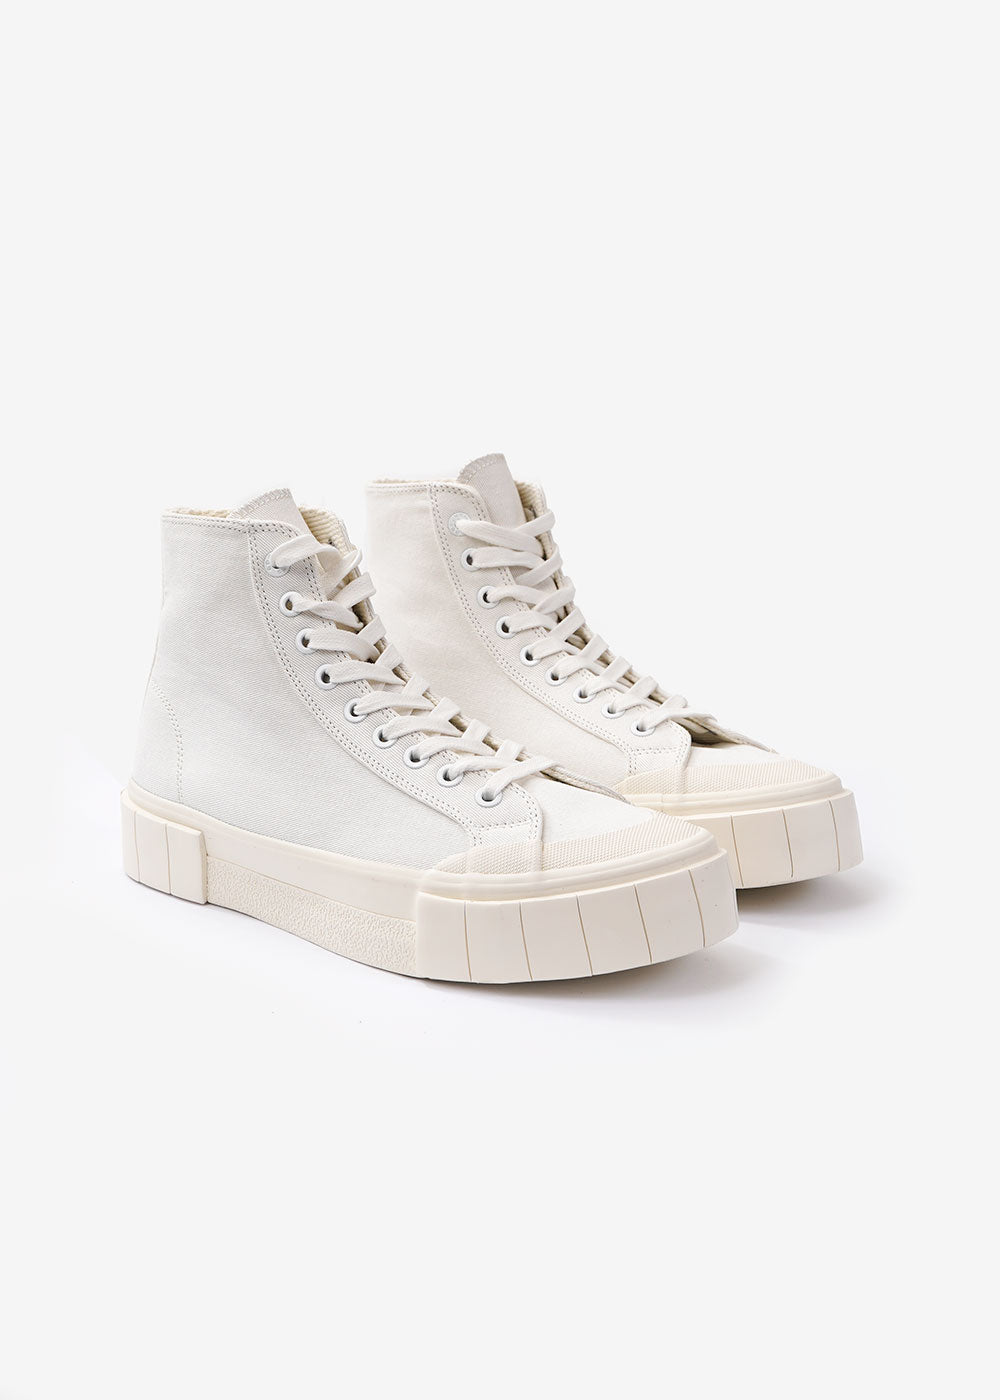 GOOD NEWS Off-White Bagger 2 Hi Sneakers — Shop sustainable fashion and slow fashion at New Classics Studios